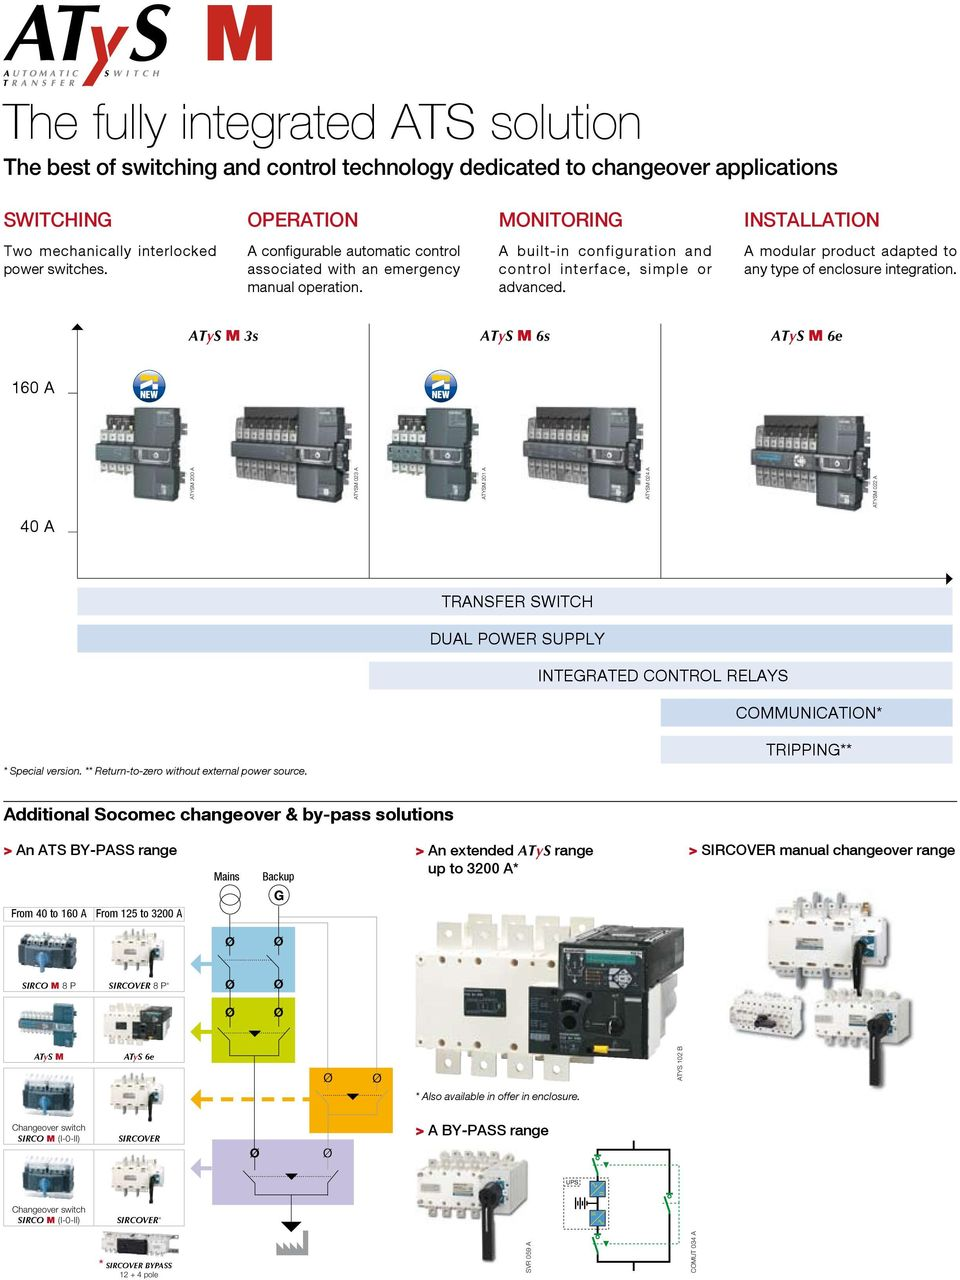 Single And Three Phase Modular Automatic Transfer Switch From 40 To Ups Ats Circuit Diagram A Product Adapted Any Type Of Enclosure Integration